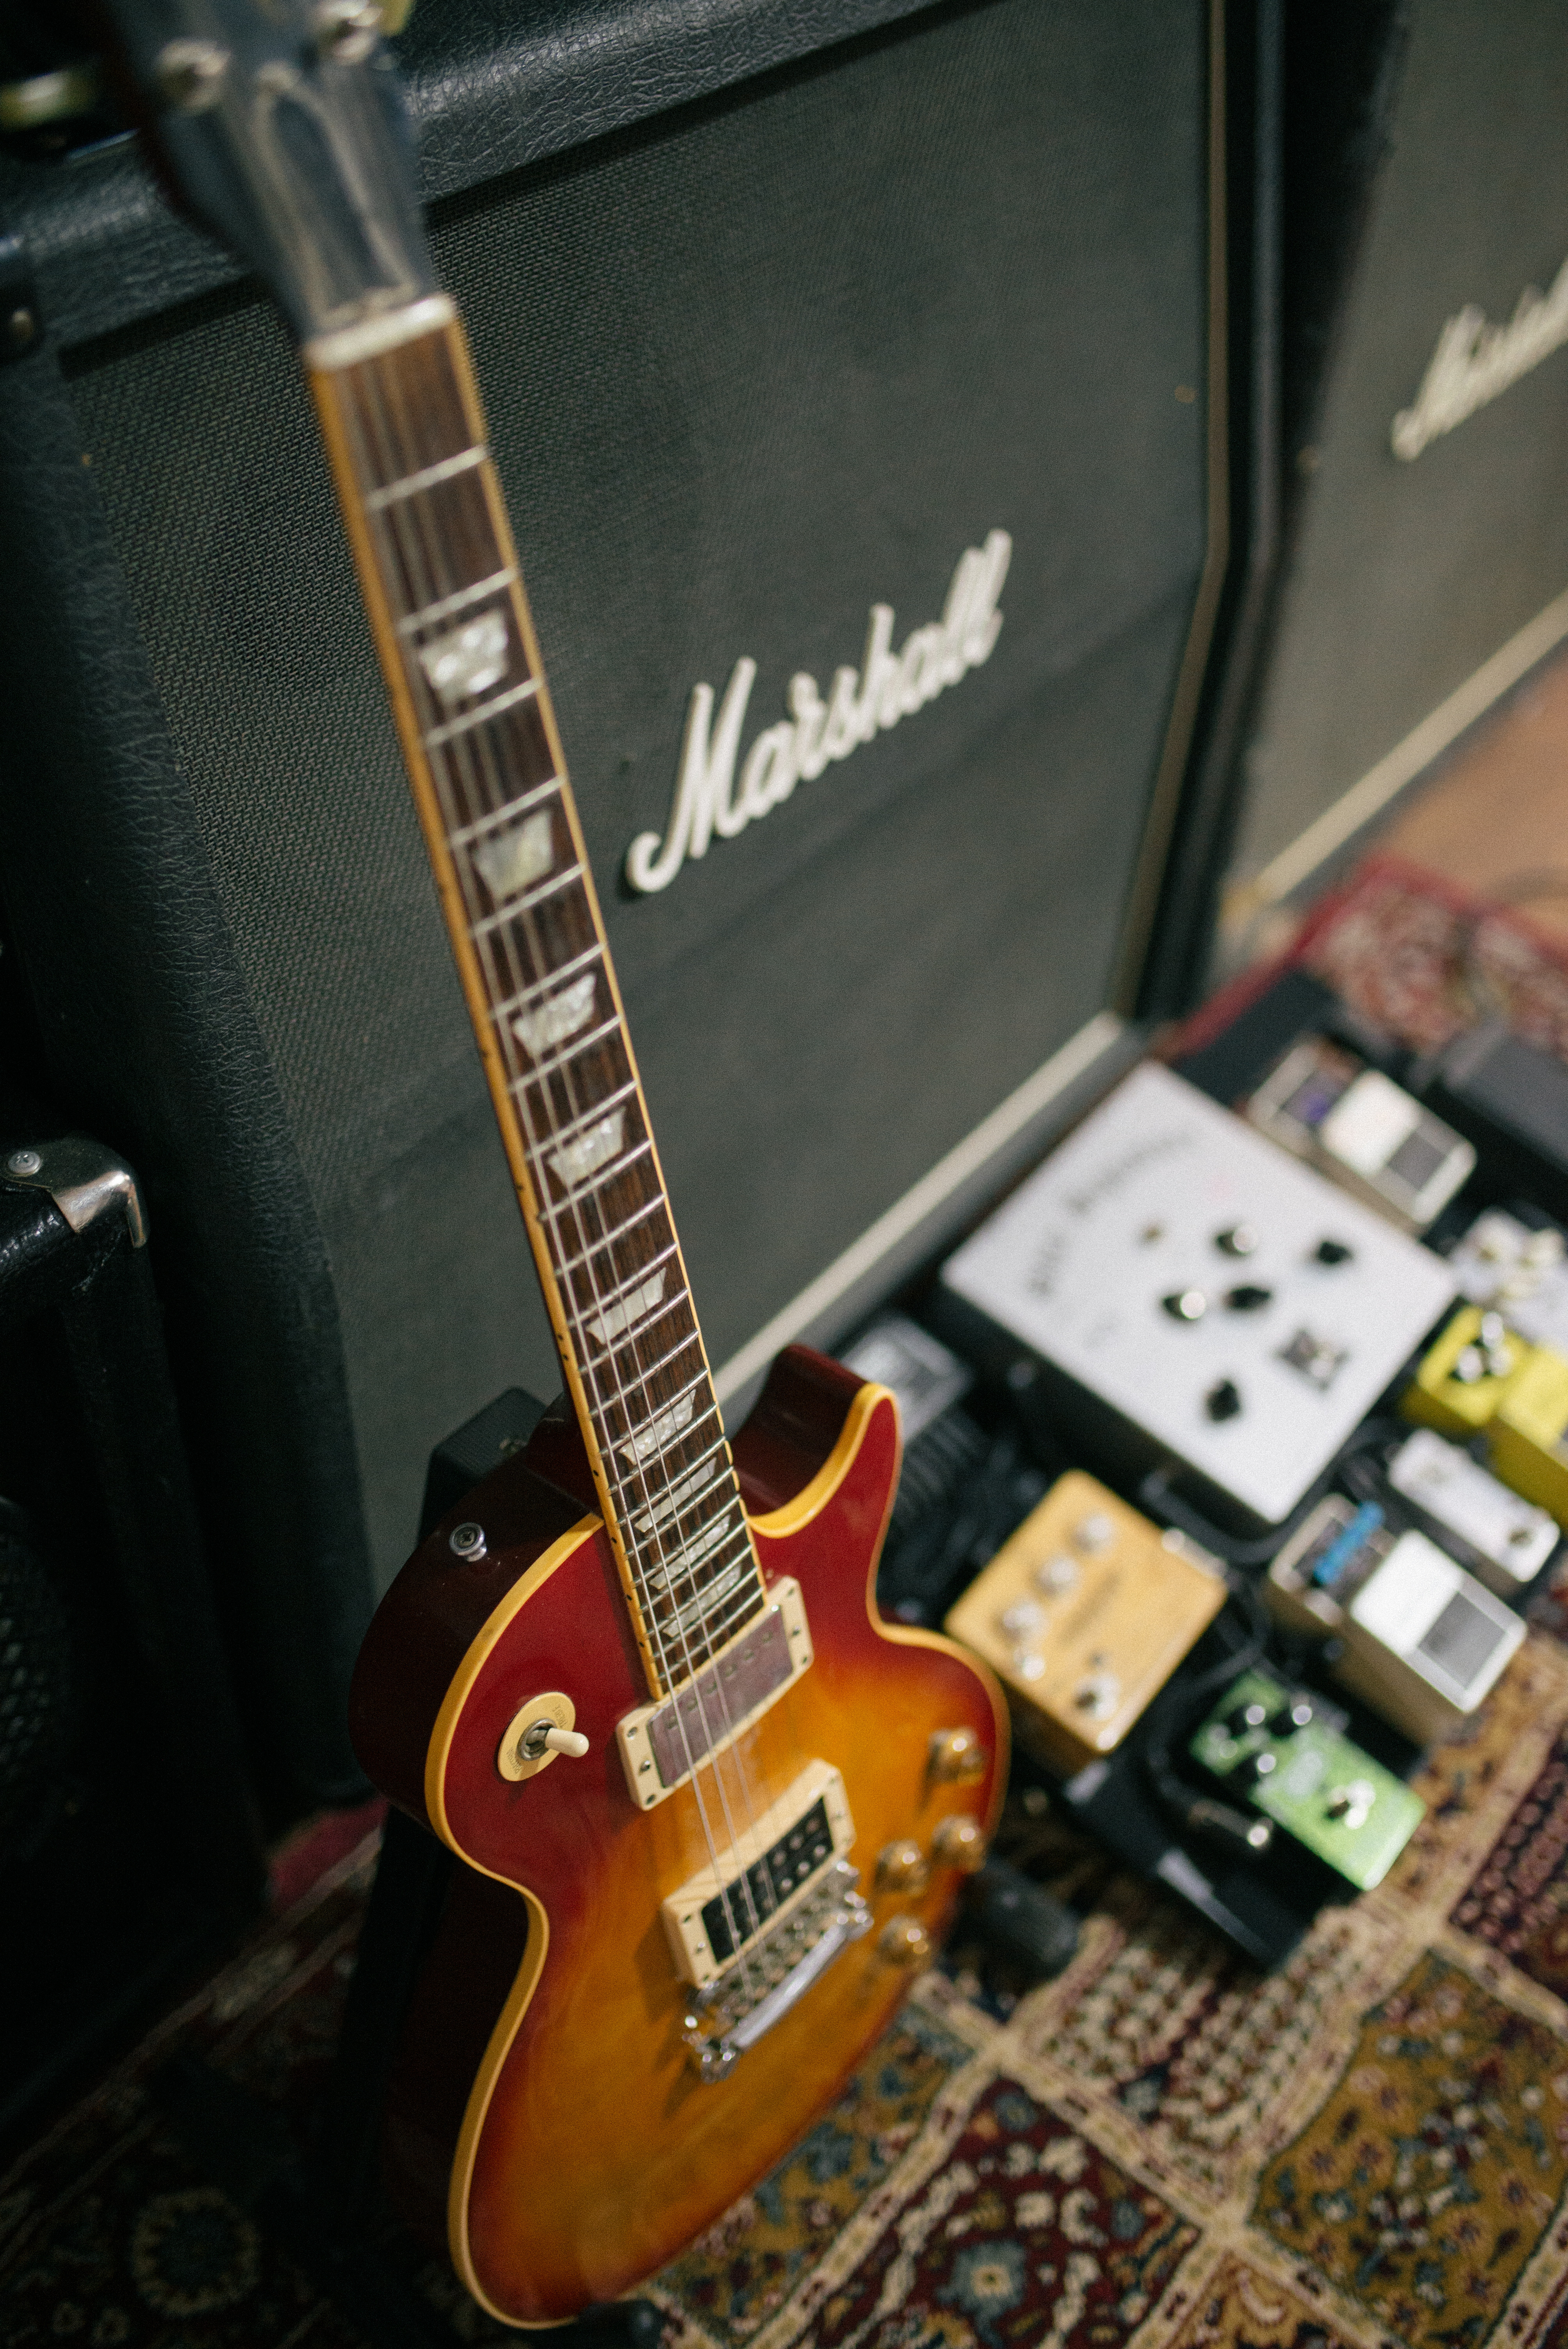 133457 download wallpaper Music, Electric Guitar, Guitar, Musical Instrument, Equipment, Vulture screensavers and pictures for free